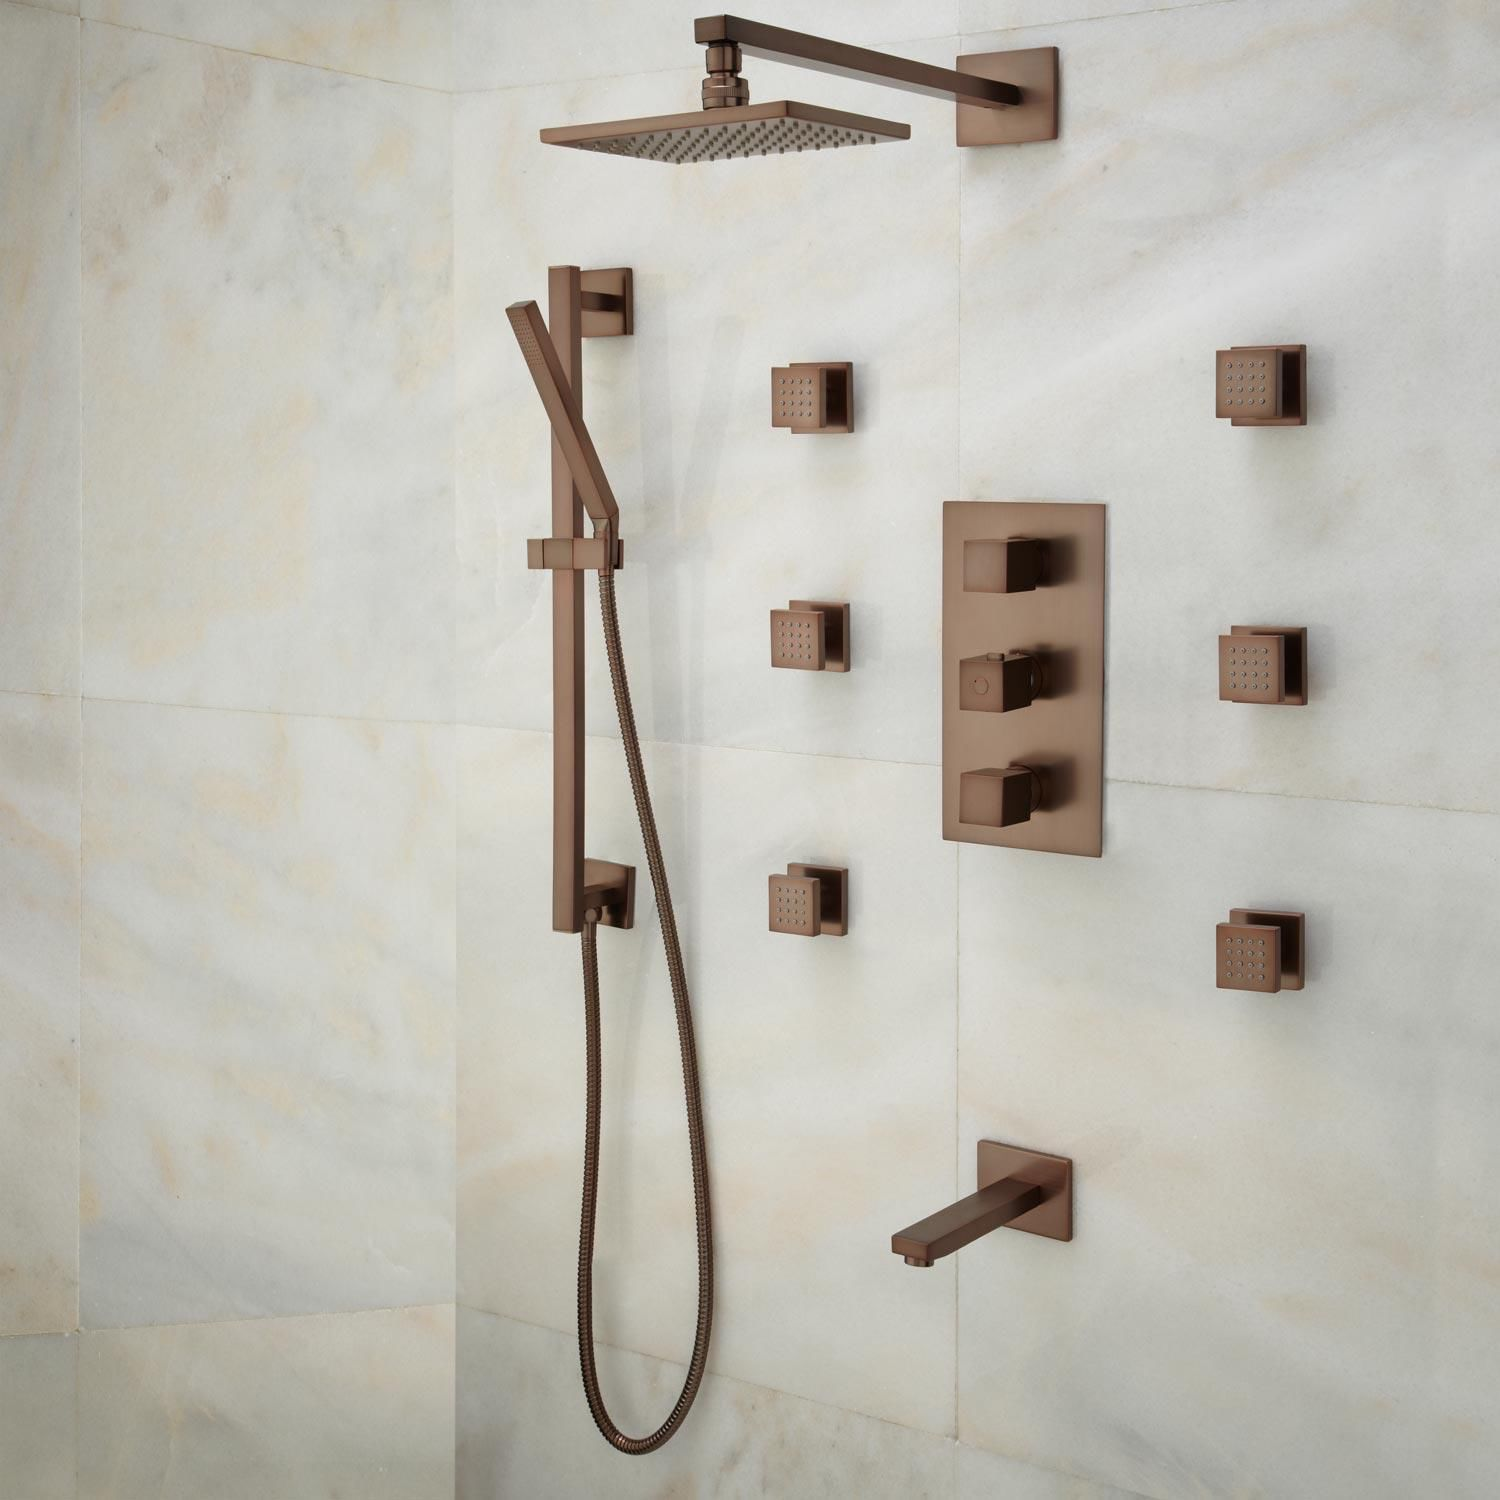 Oil Rubbed Bronze Luxury Shower Systems